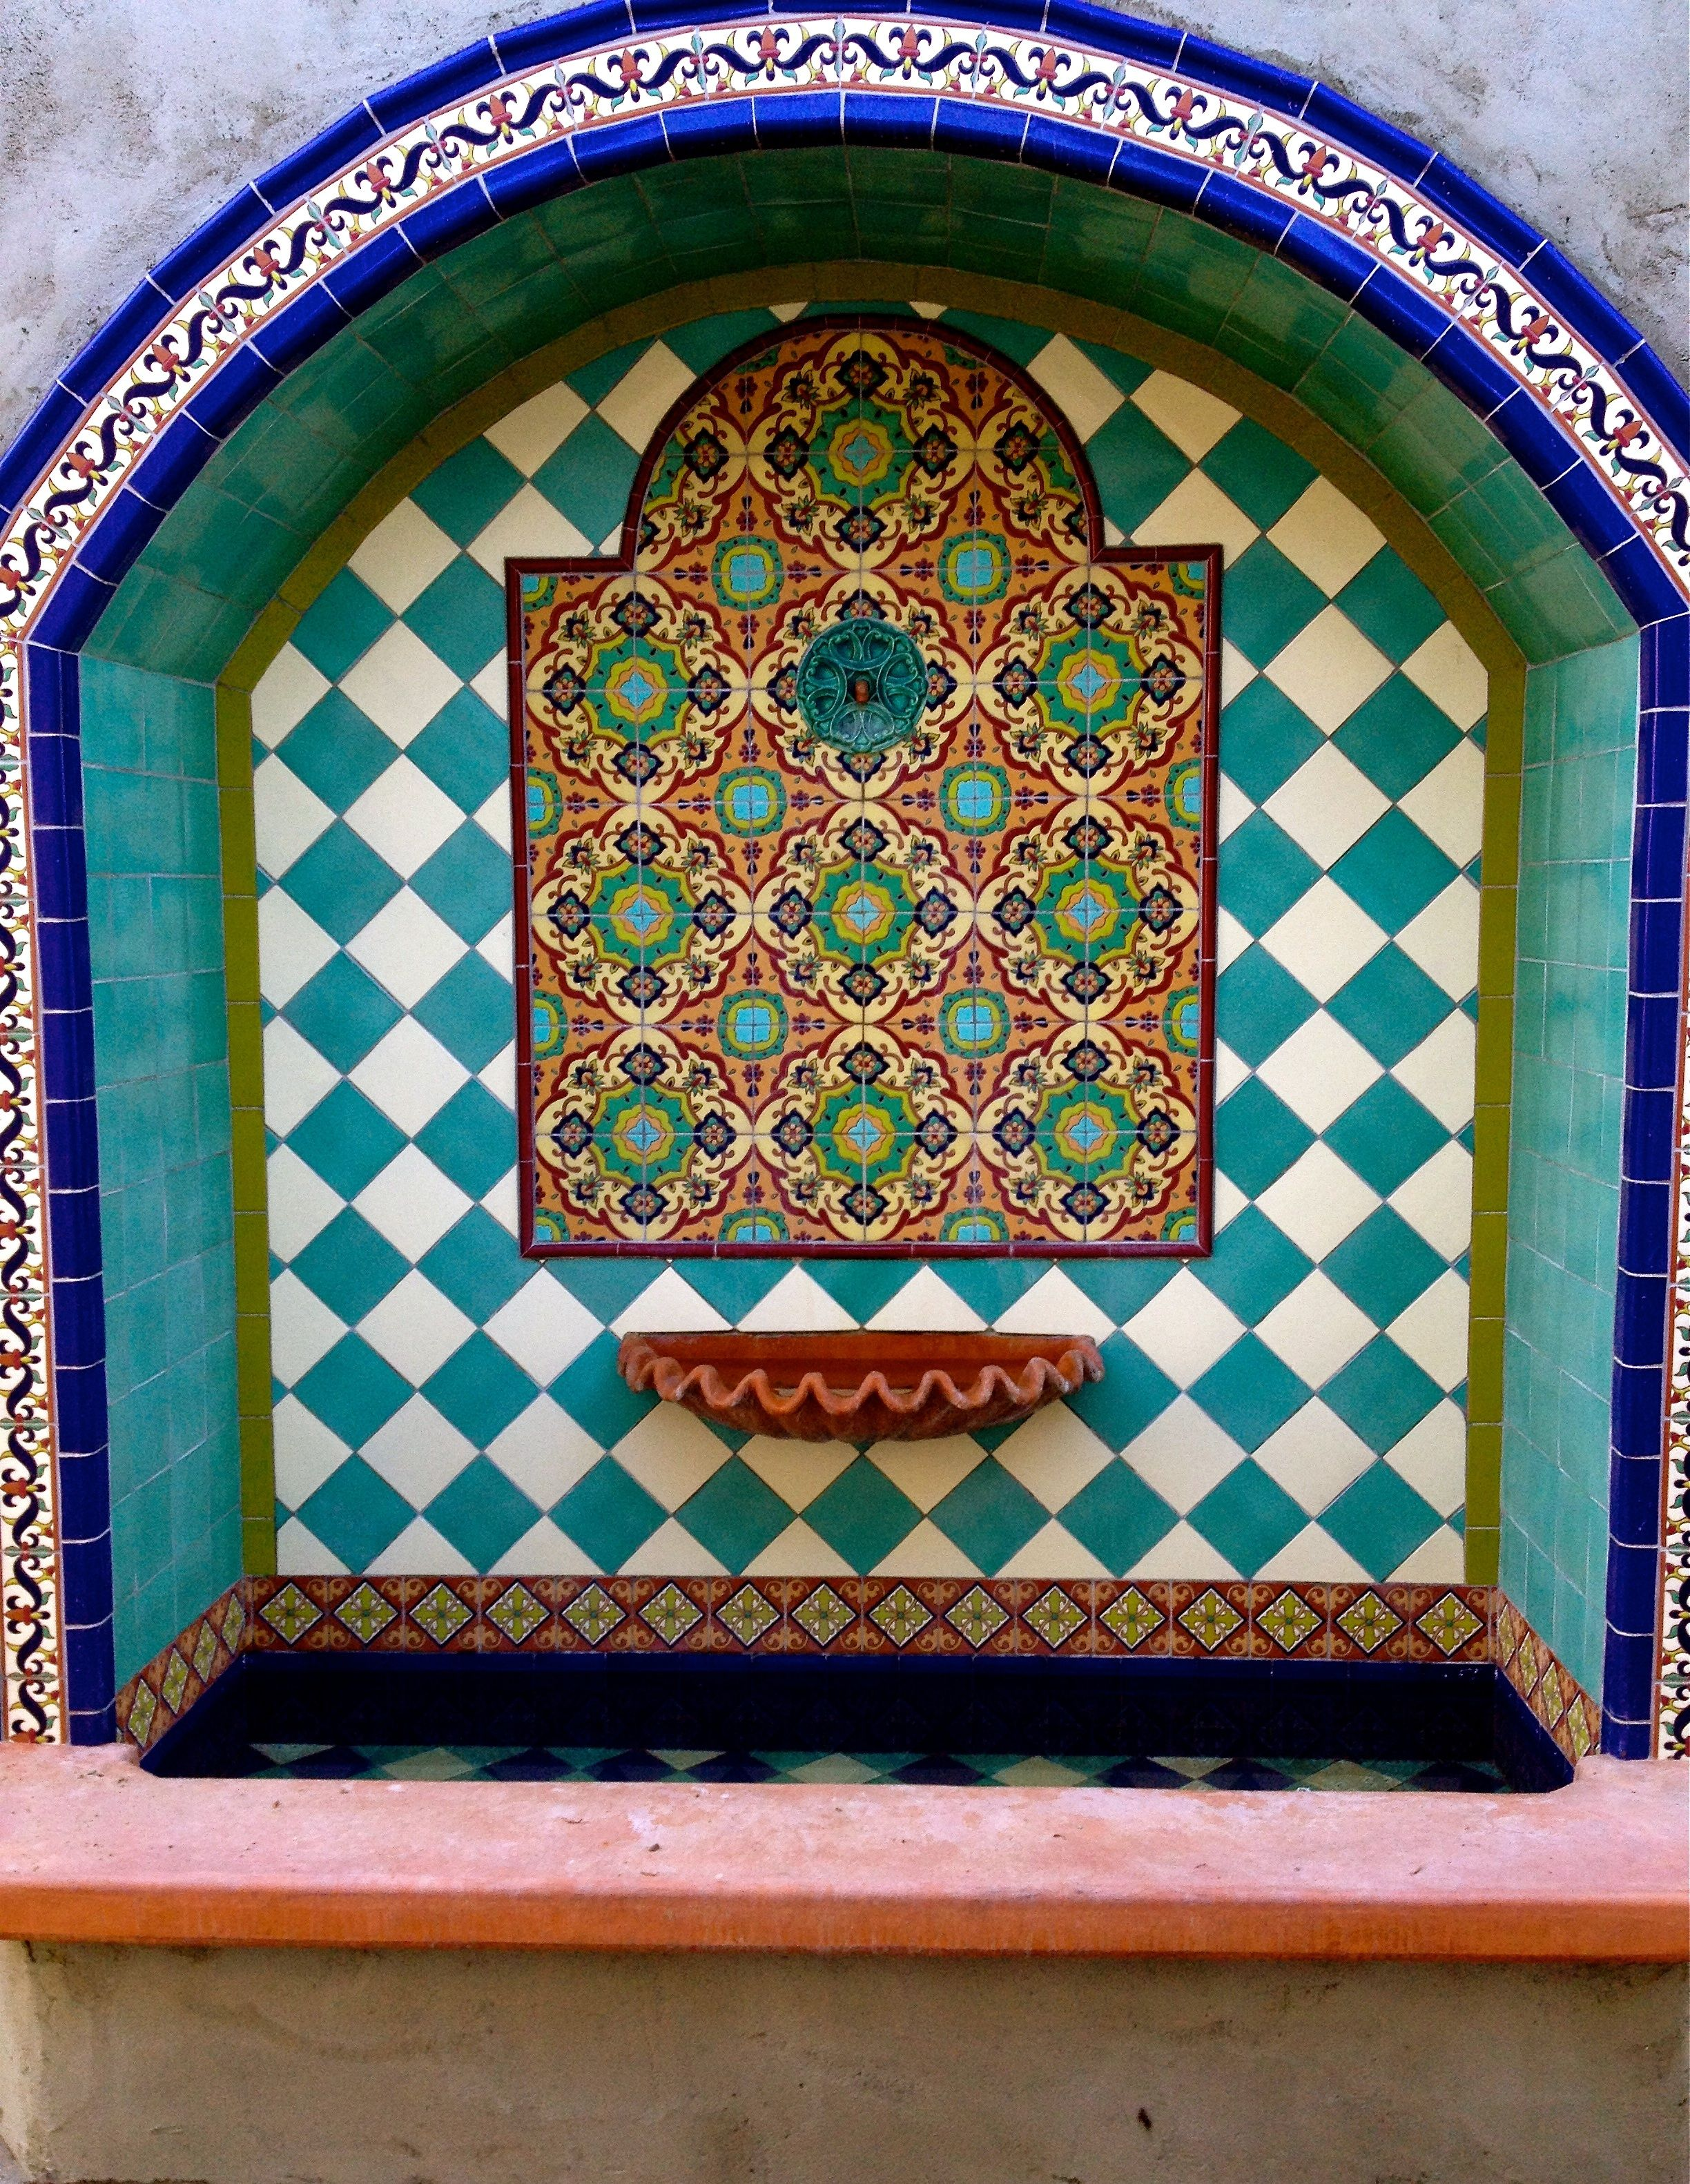 Hand painted ceramic tile fountain project tiles in fountains hand painted ceramic tile fountain project dailygadgetfo Image collections